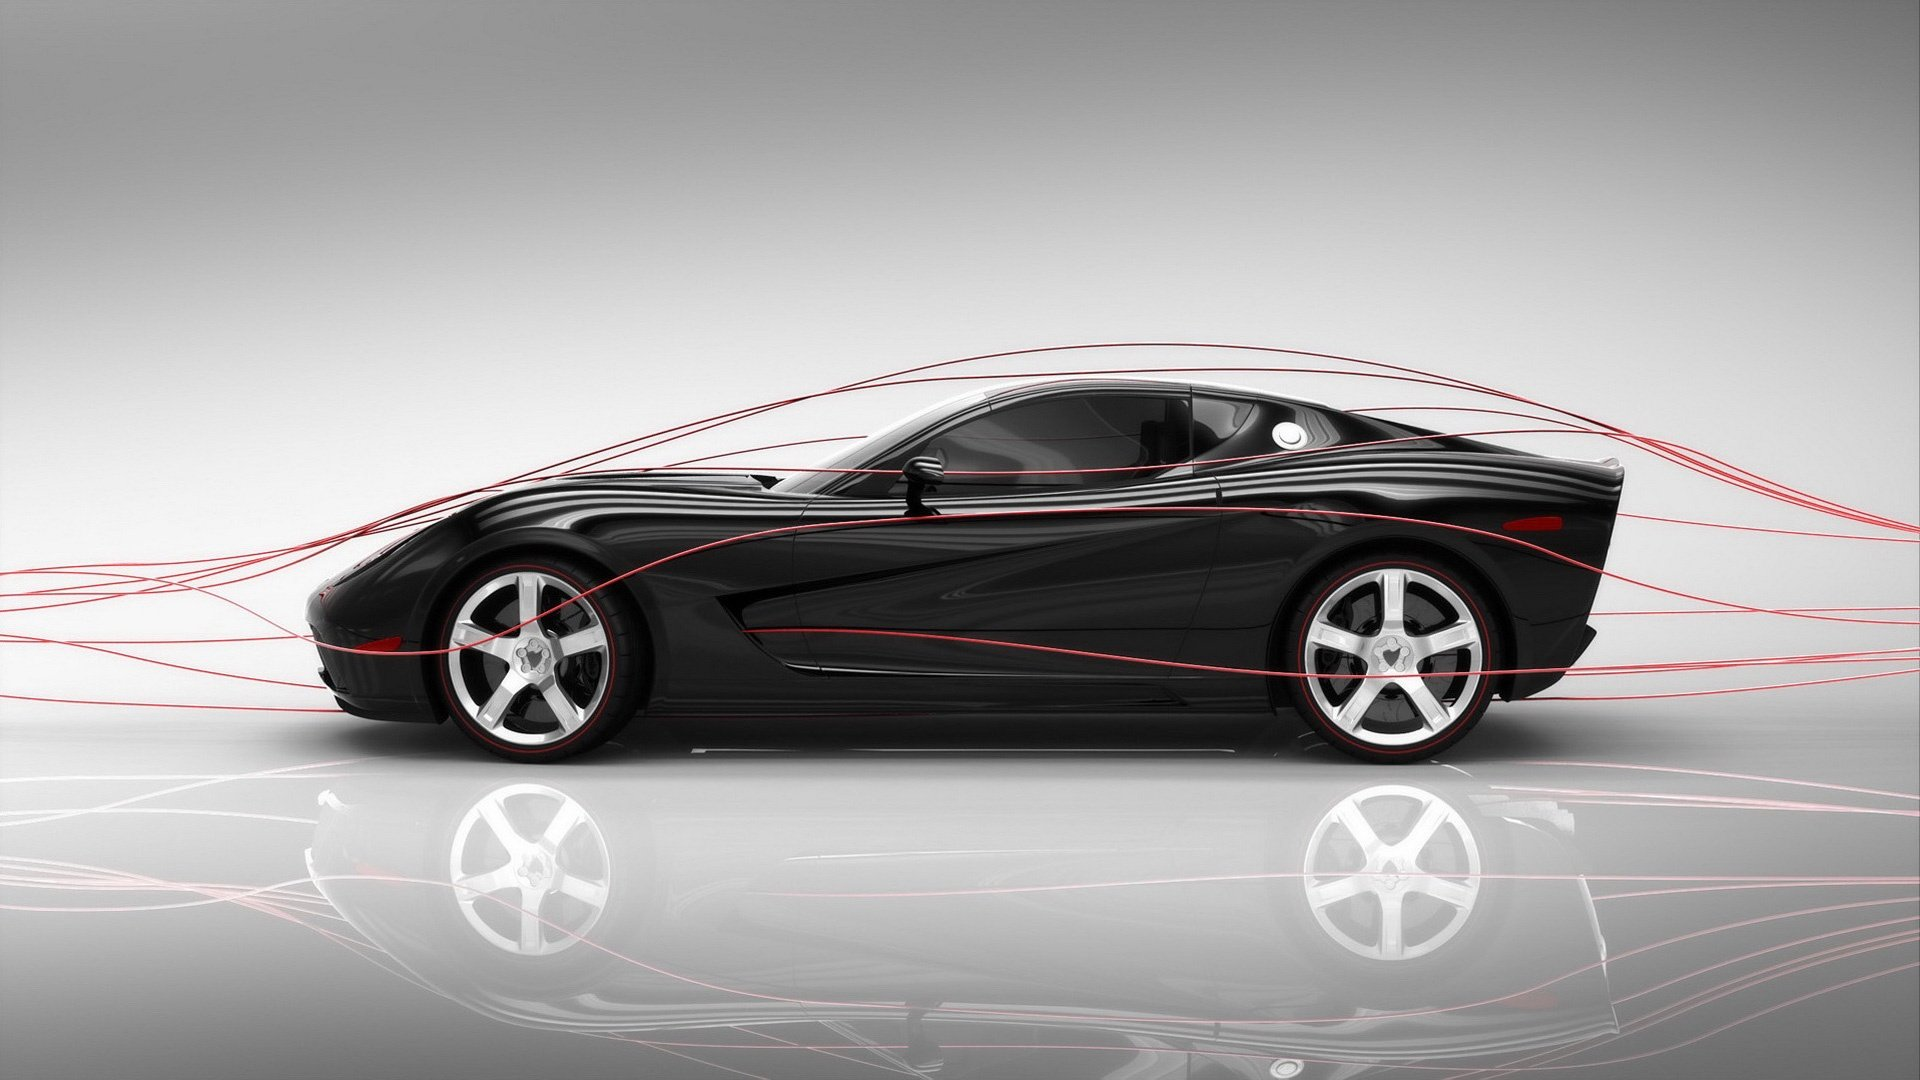 mallett super car 1920x1080 HD 1080p Desktop Wallpapers 1920x1080 1920x1080